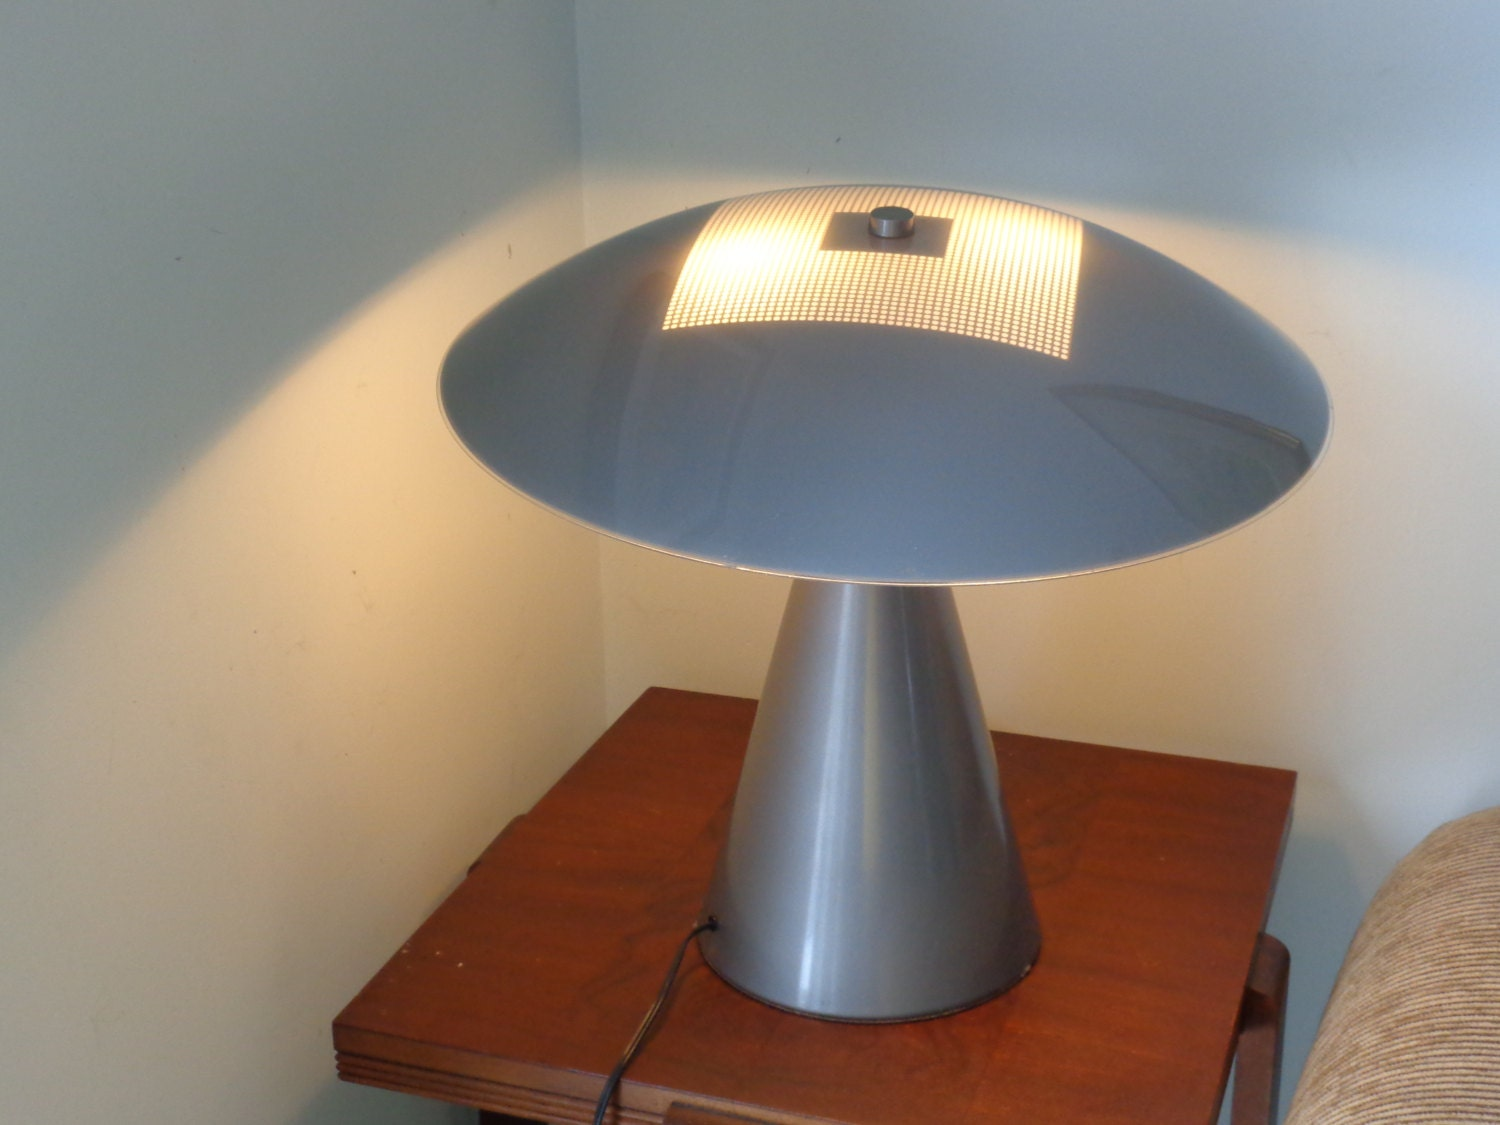 Popular items for lampe soucoupe on etsy - Lampe soucoupe volante ...